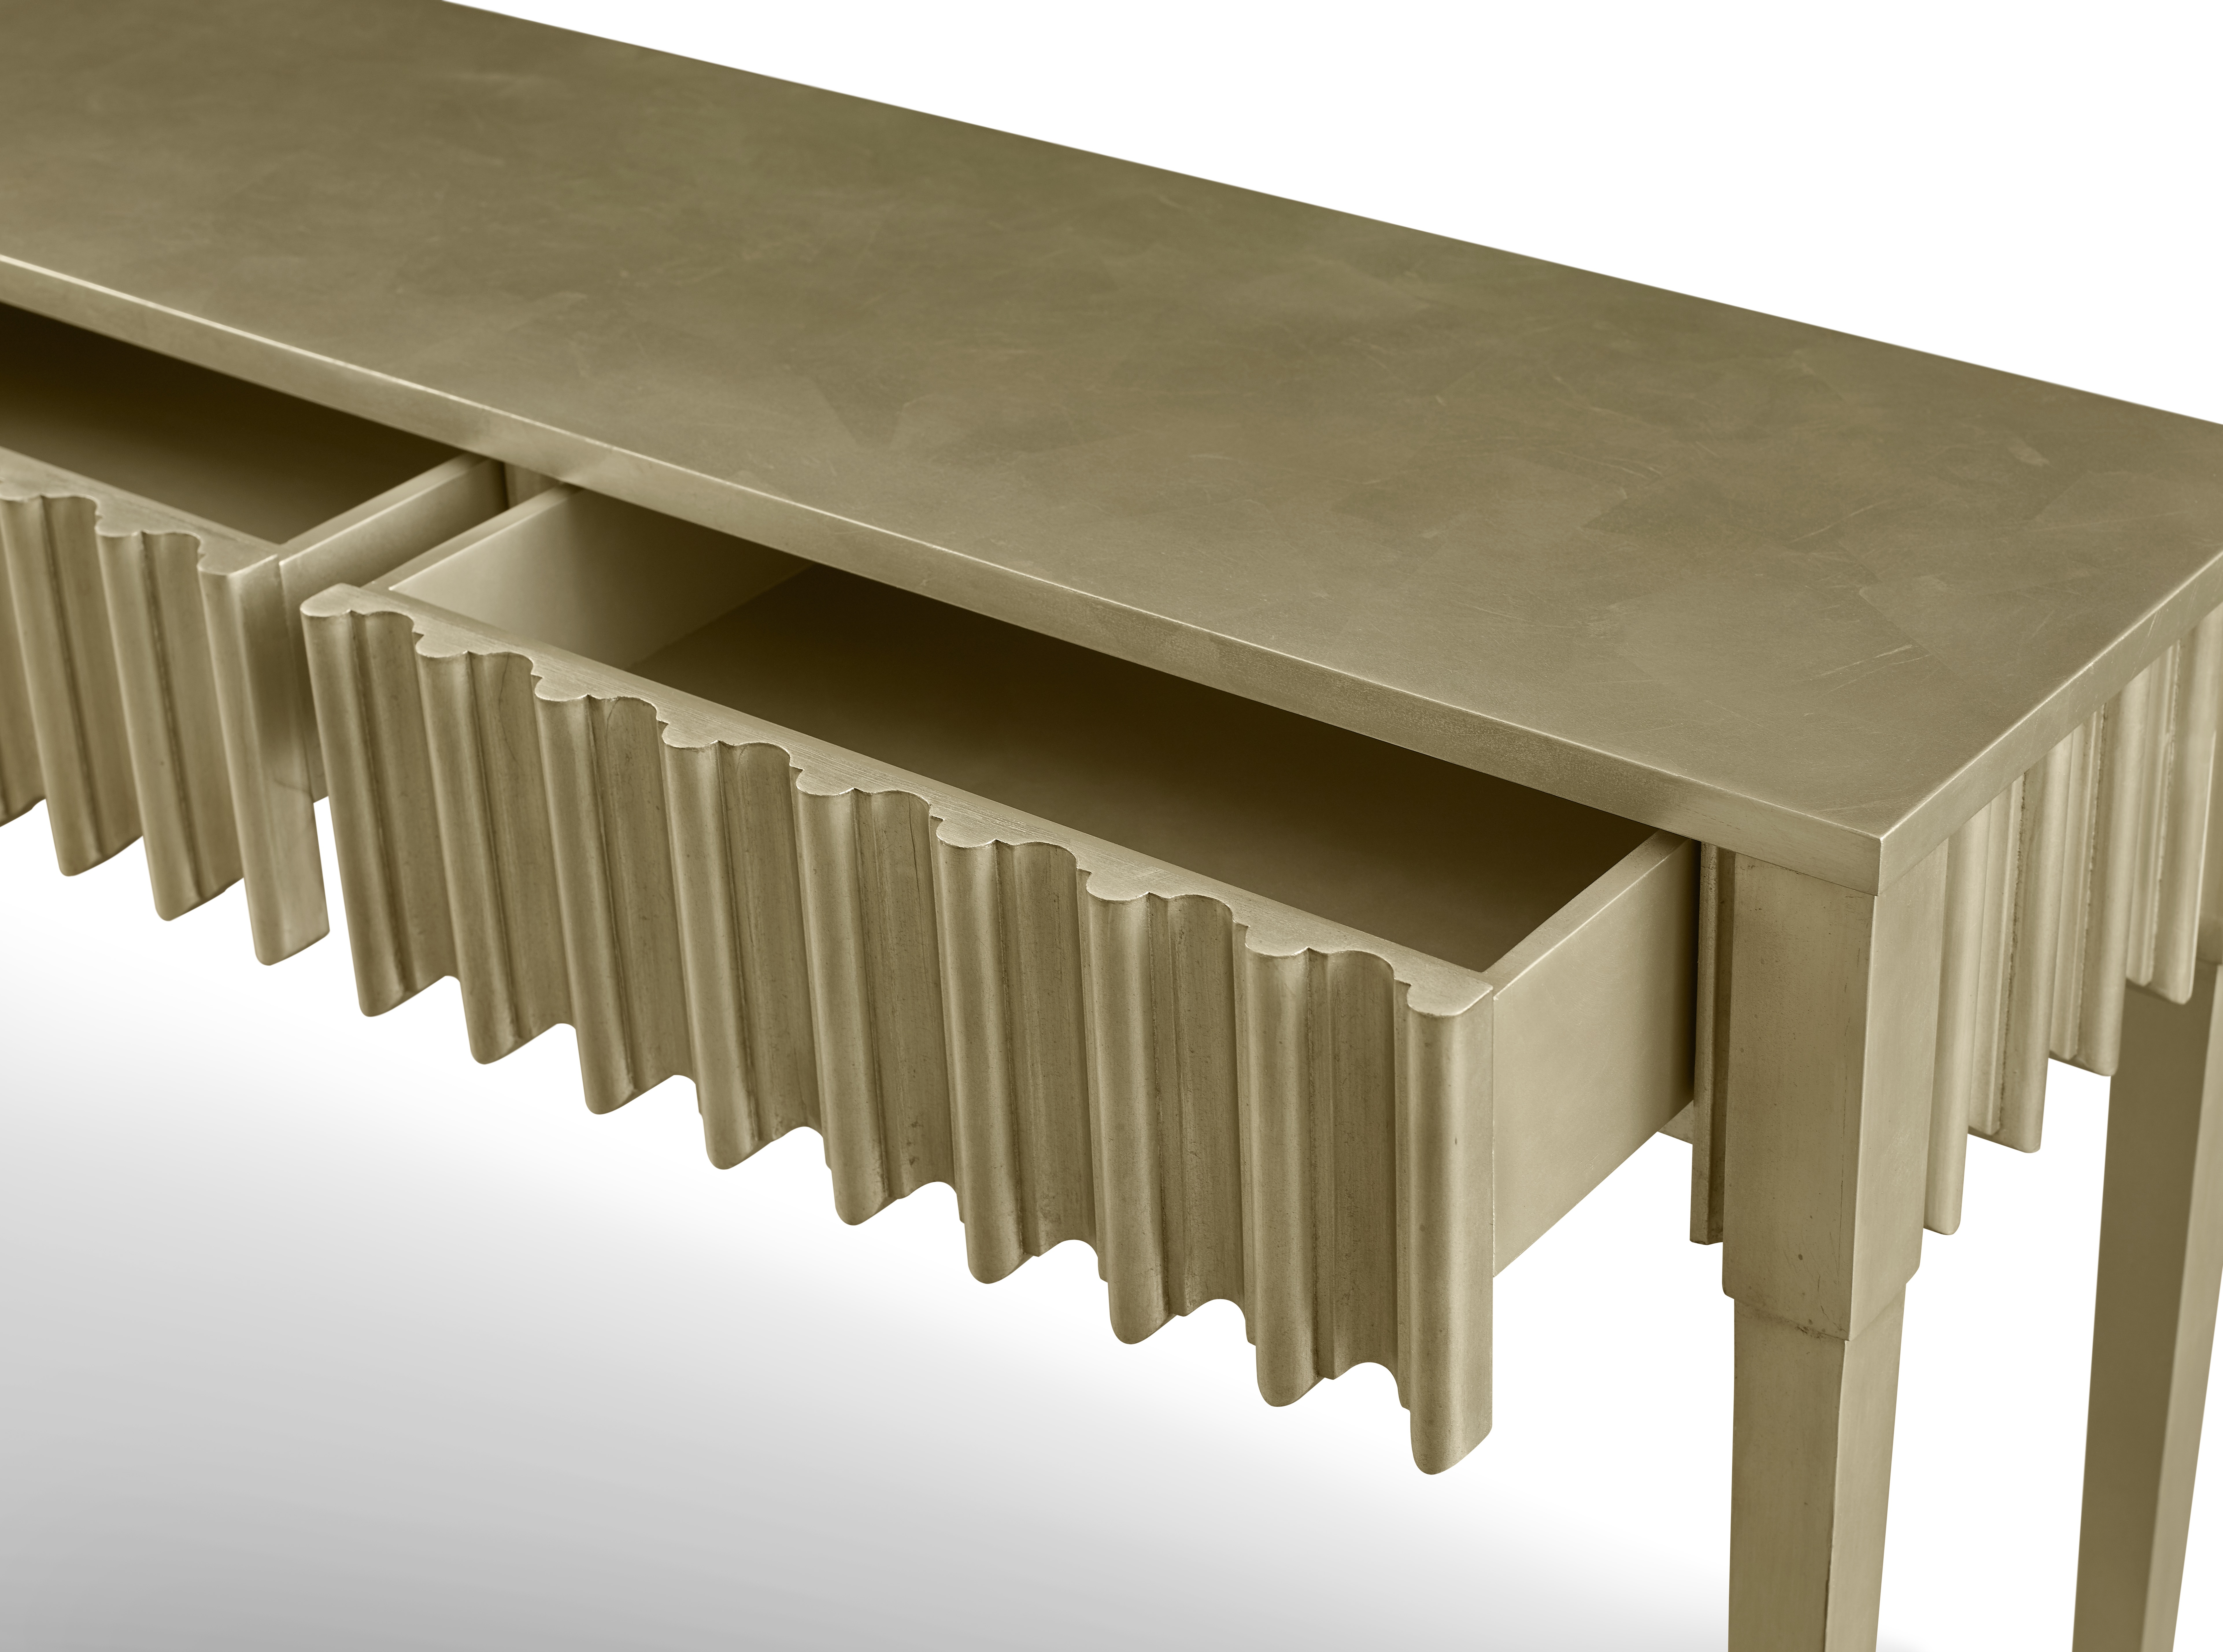 Baker_products_WNWN_reese_console_table_BAA3264_DETAIL-1